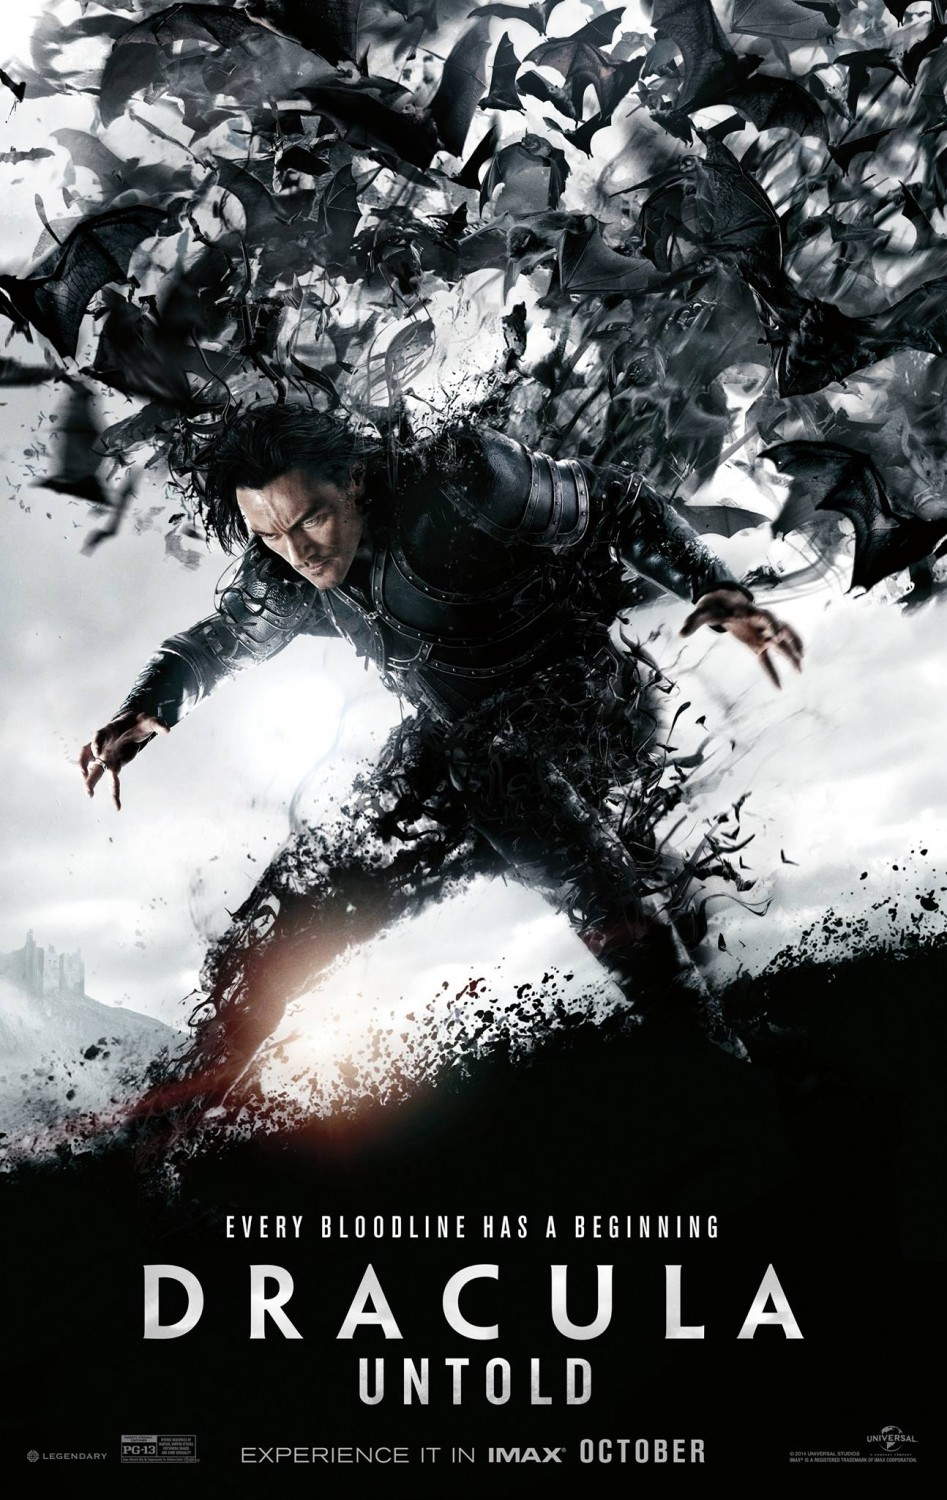 affiche du film dracula untold affiche 2 sur 3 allocin. Black Bedroom Furniture Sets. Home Design Ideas